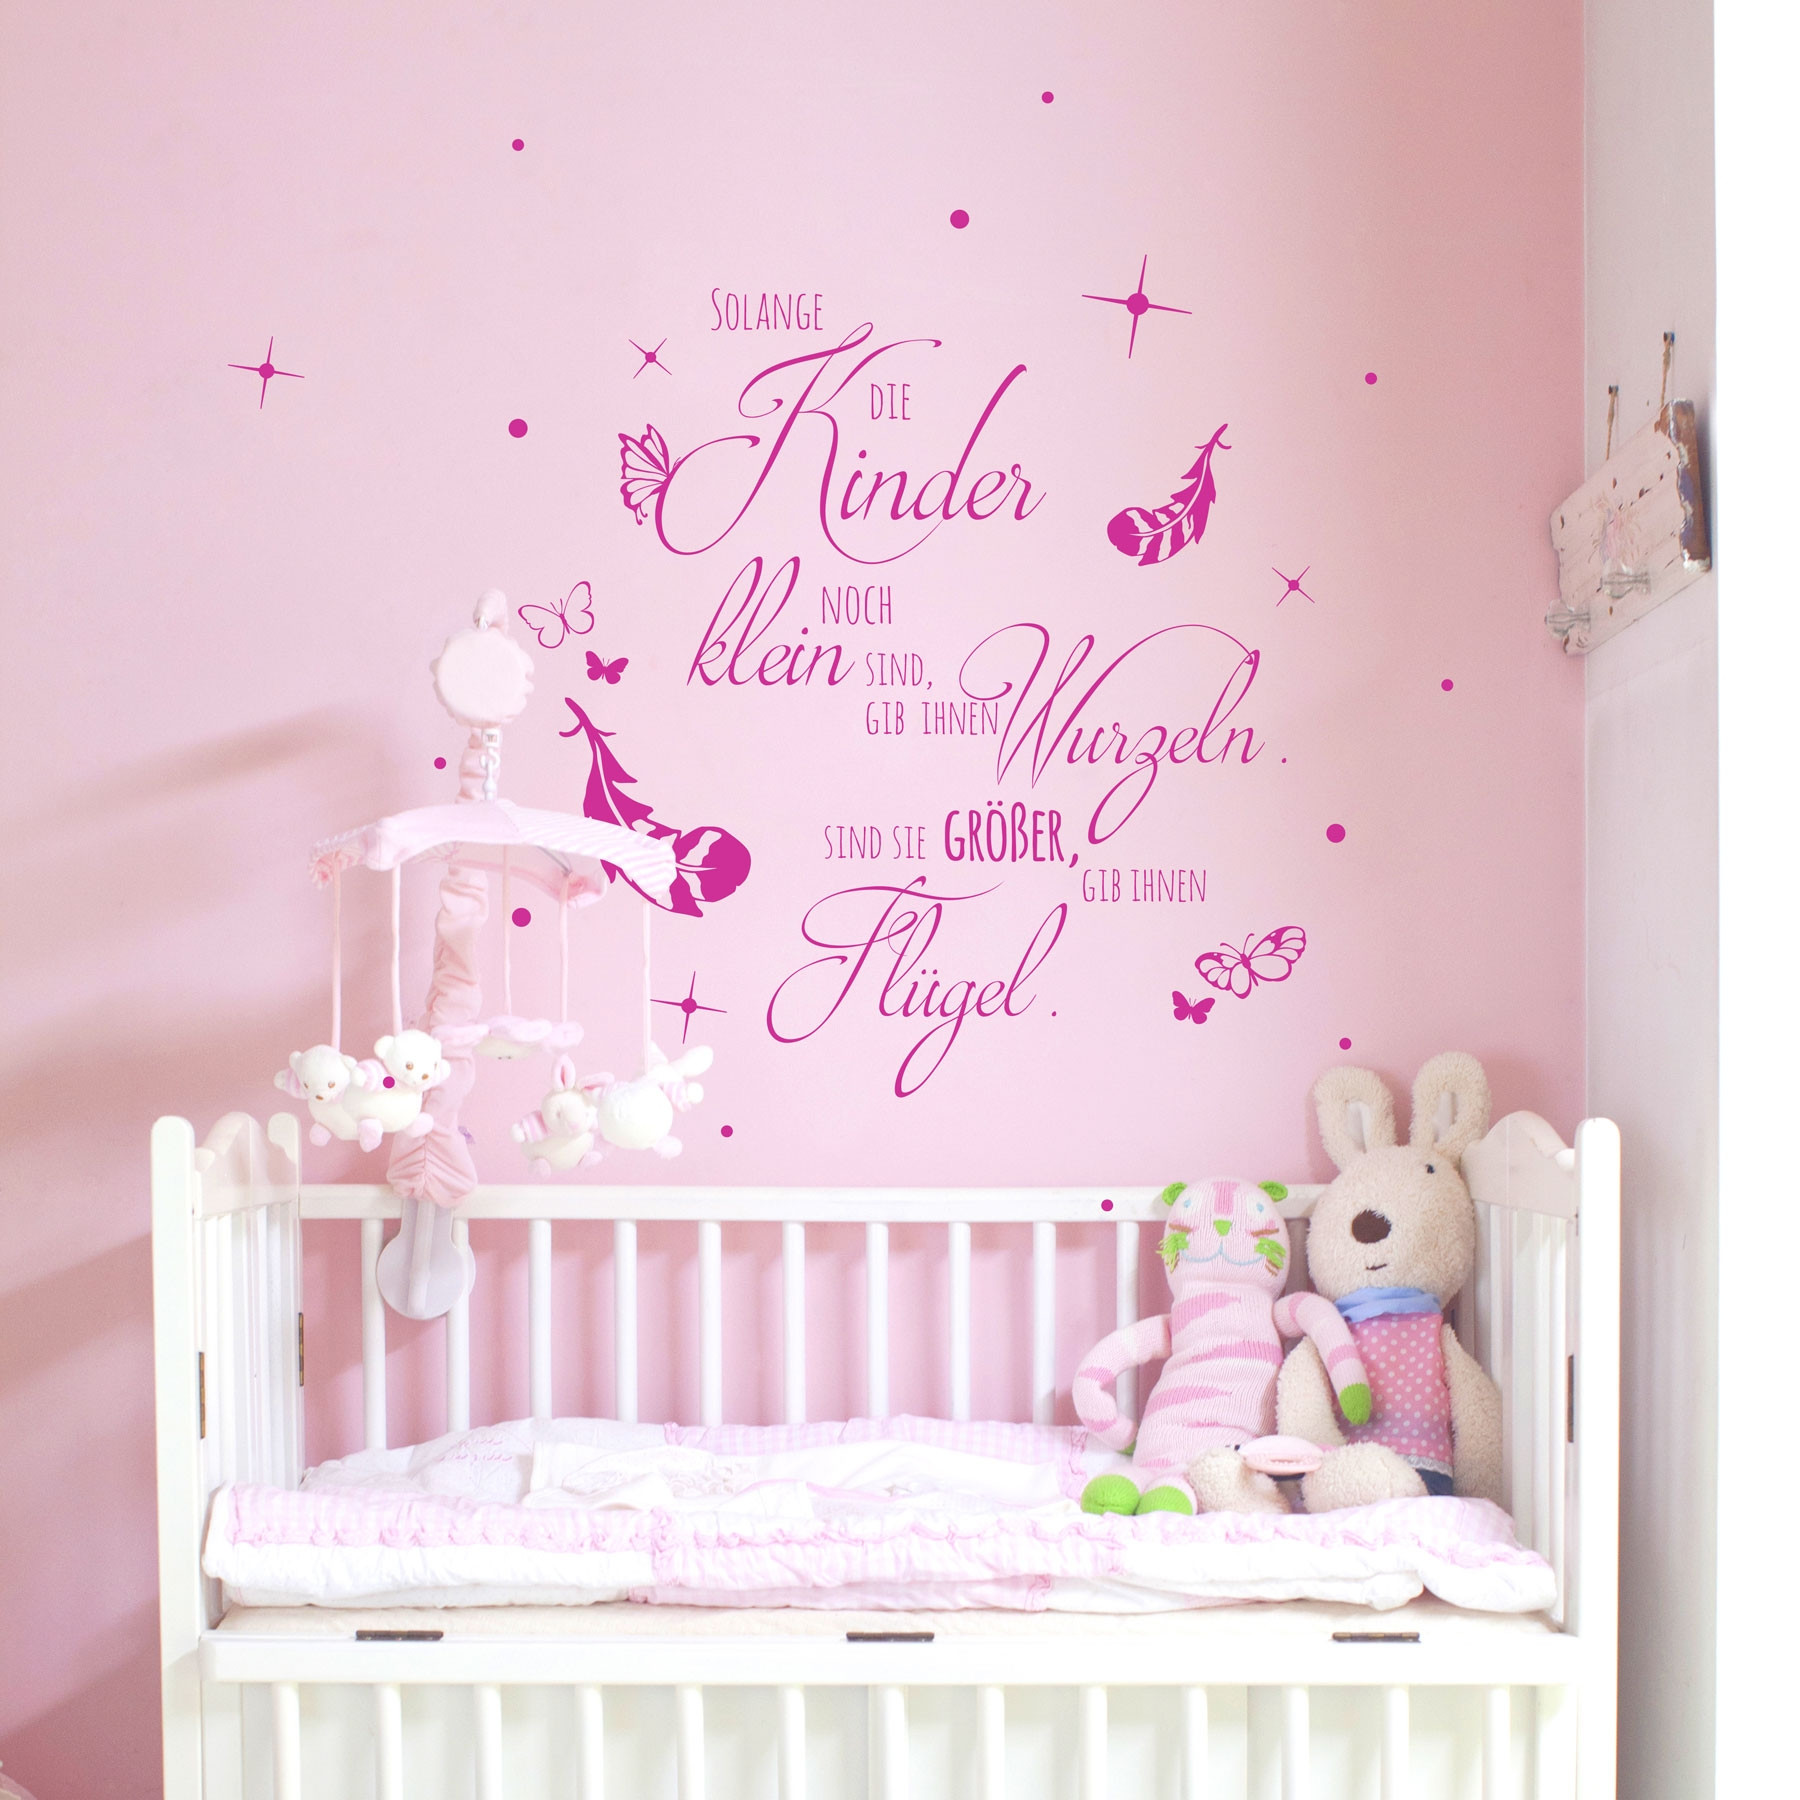 wandtattoo kinderzimmer mit spruch zitat solange kinder. Black Bedroom Furniture Sets. Home Design Ideas